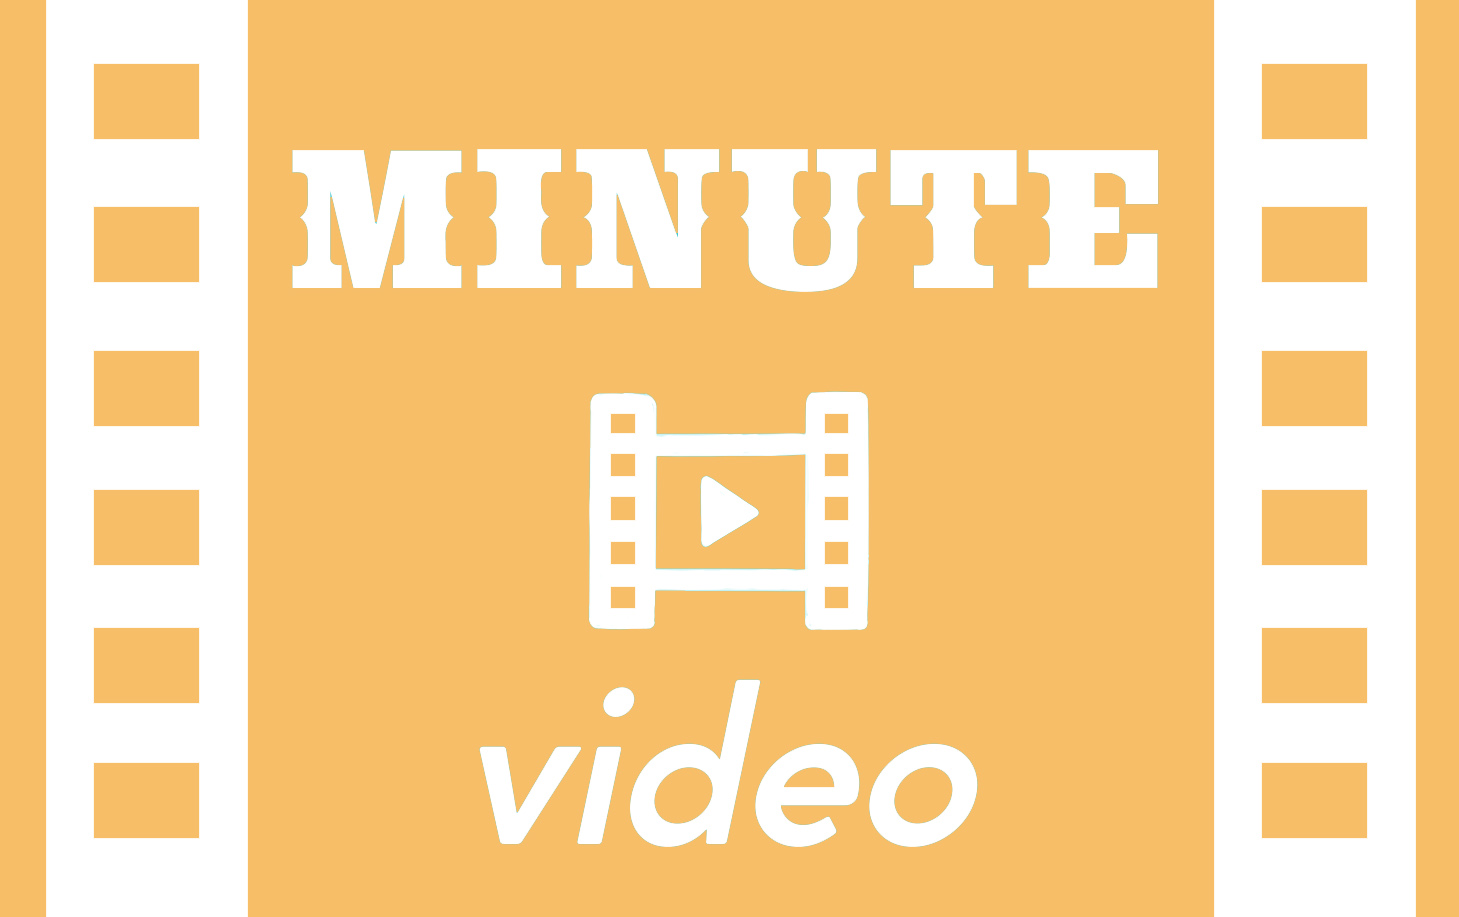 VIDEO MINUTE taronja